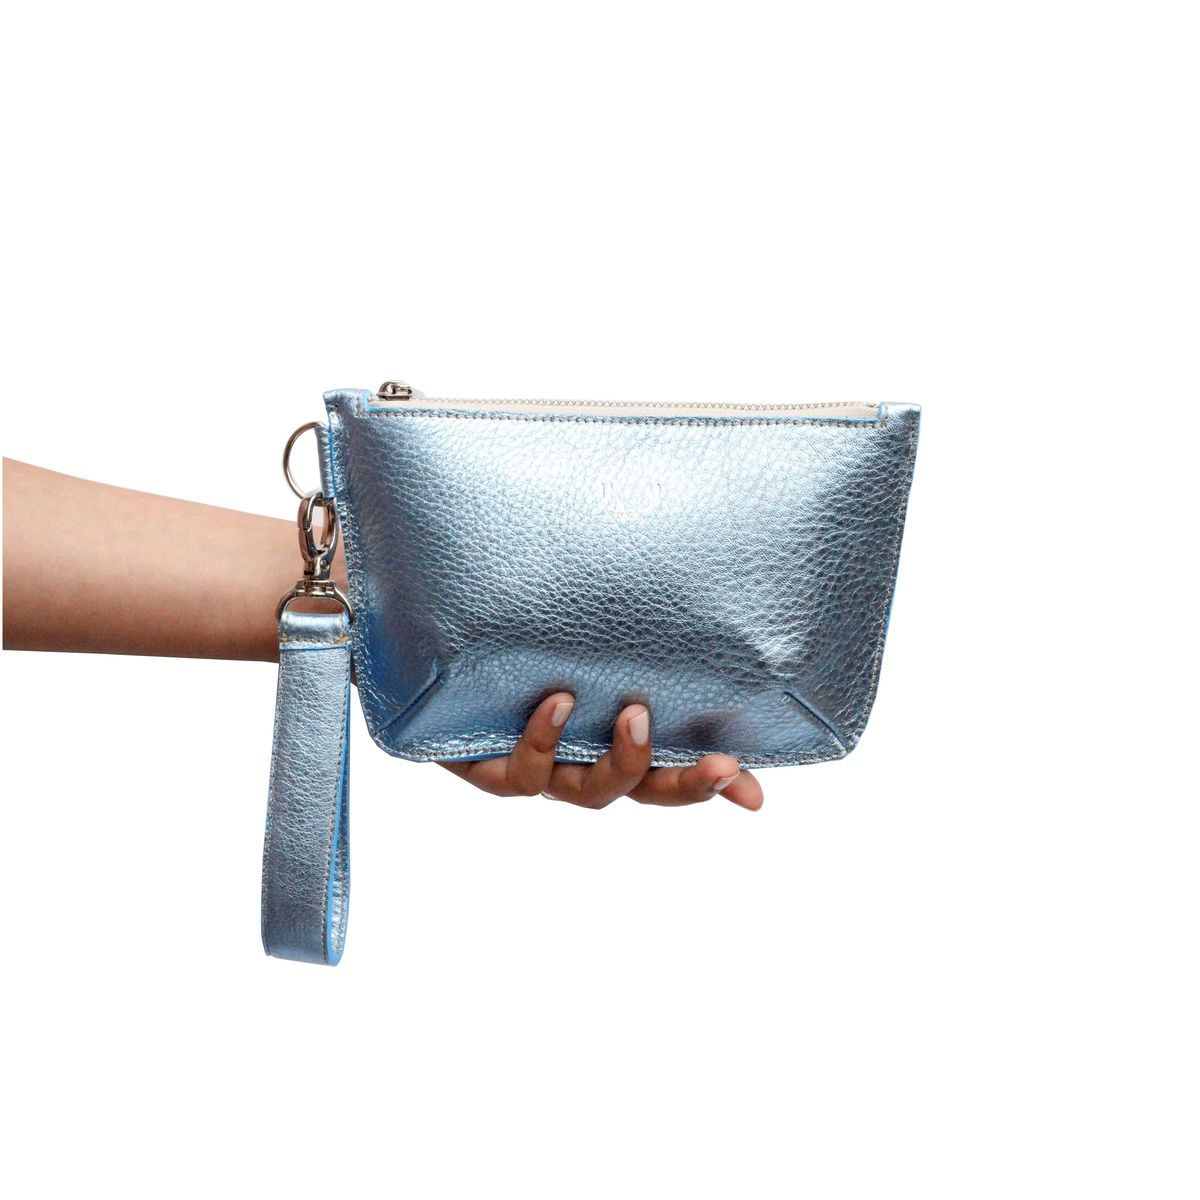 *NEW* Metallic Ice Blue Mini Sienna Clutch Bag - product images  of